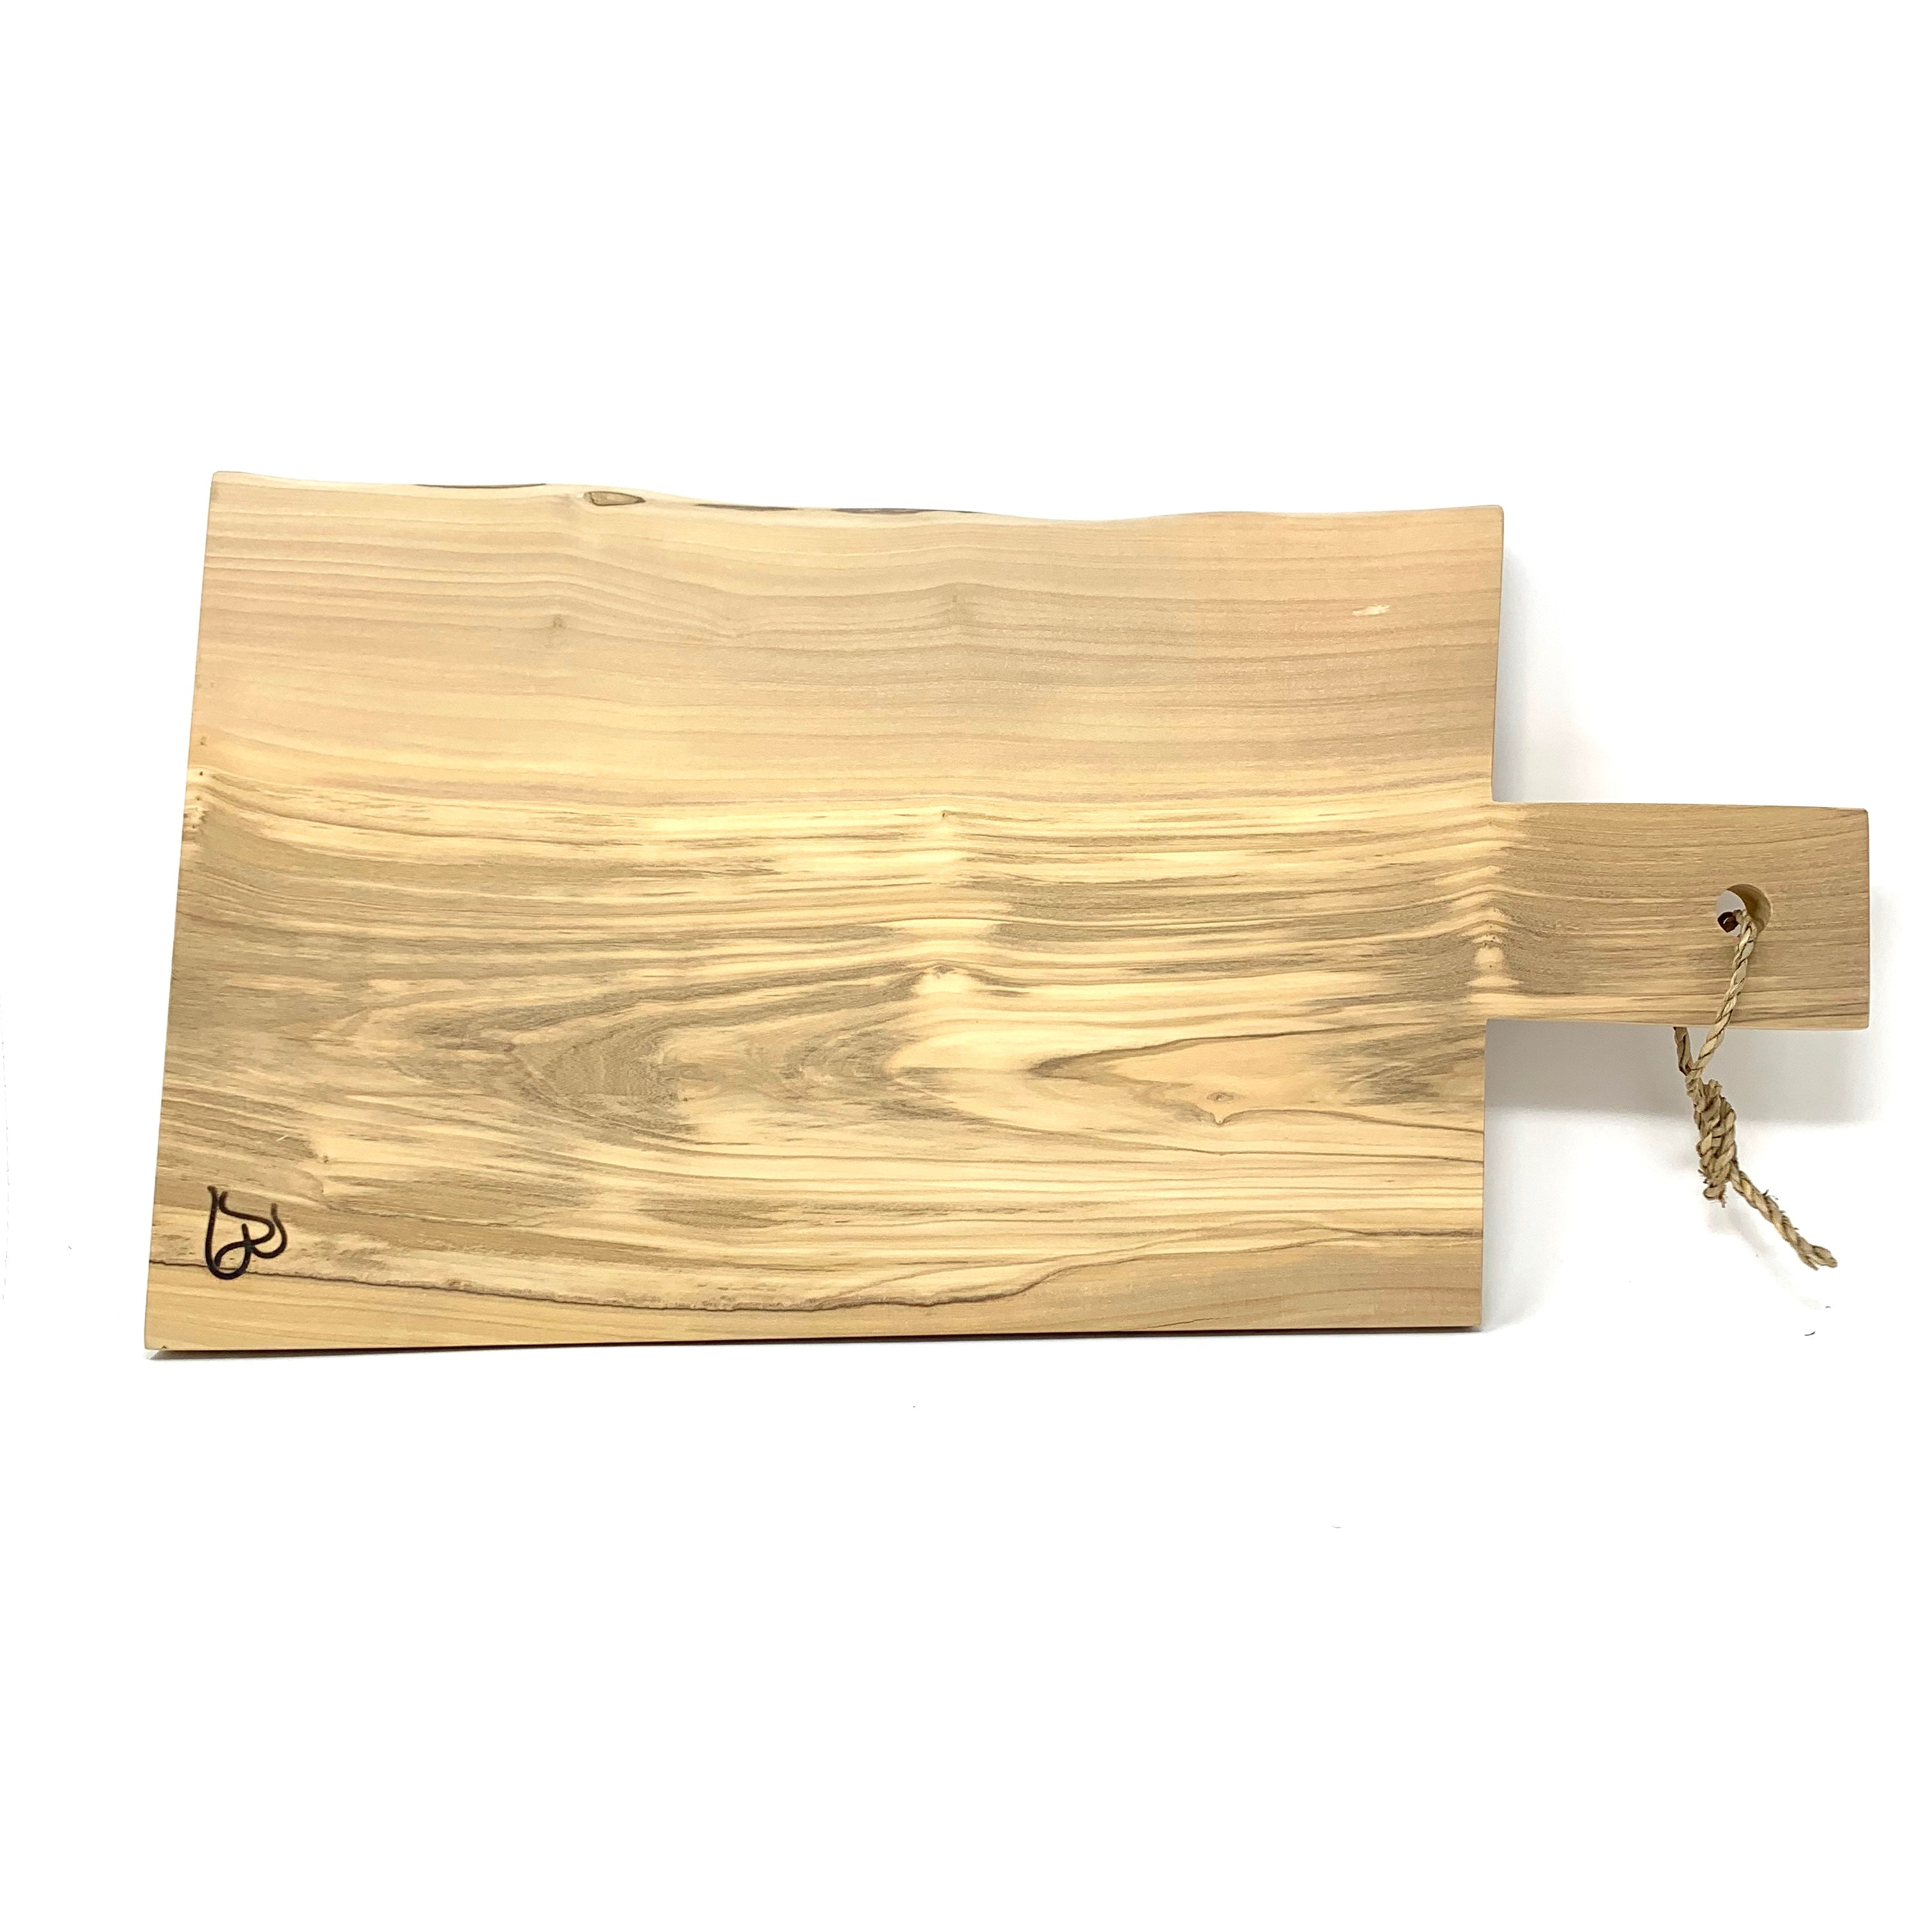 Square Olive Wood Cutting Board - Large with Handle